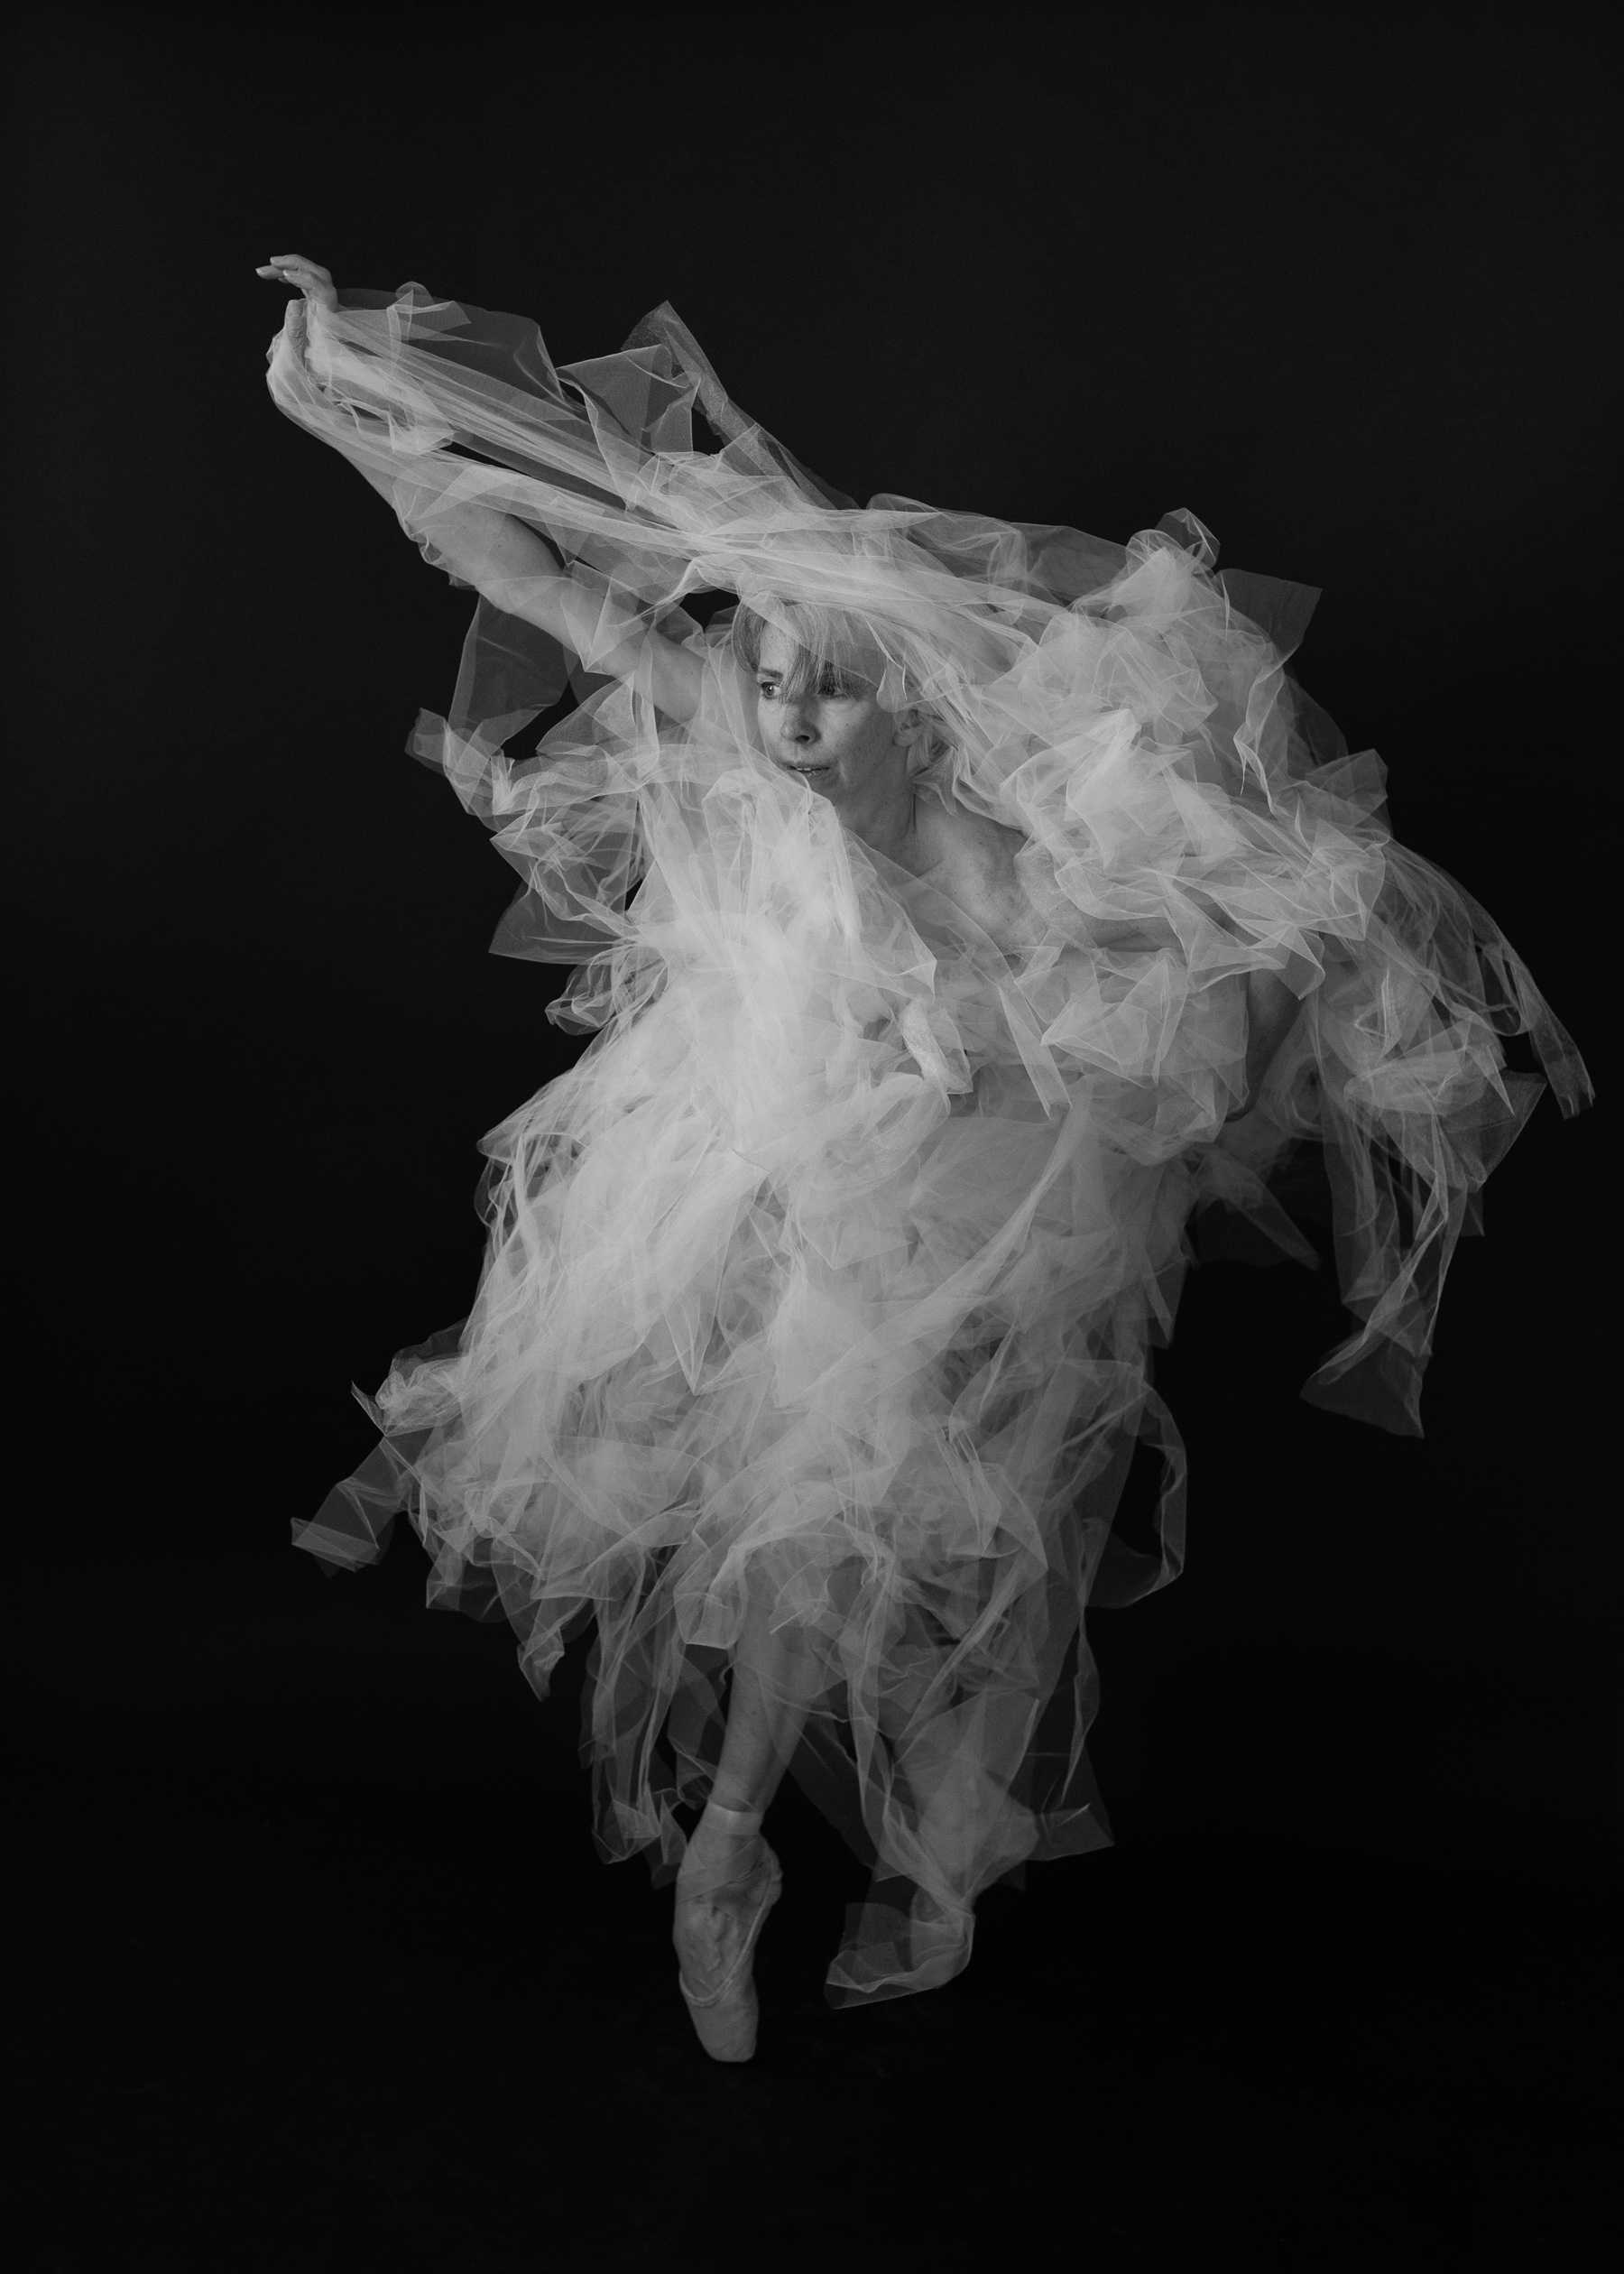 Valerie Madonia dances in flowing tulle skirt during photo session with Denver photographer Jennifer Koskinen, Merritt Portrait Studio